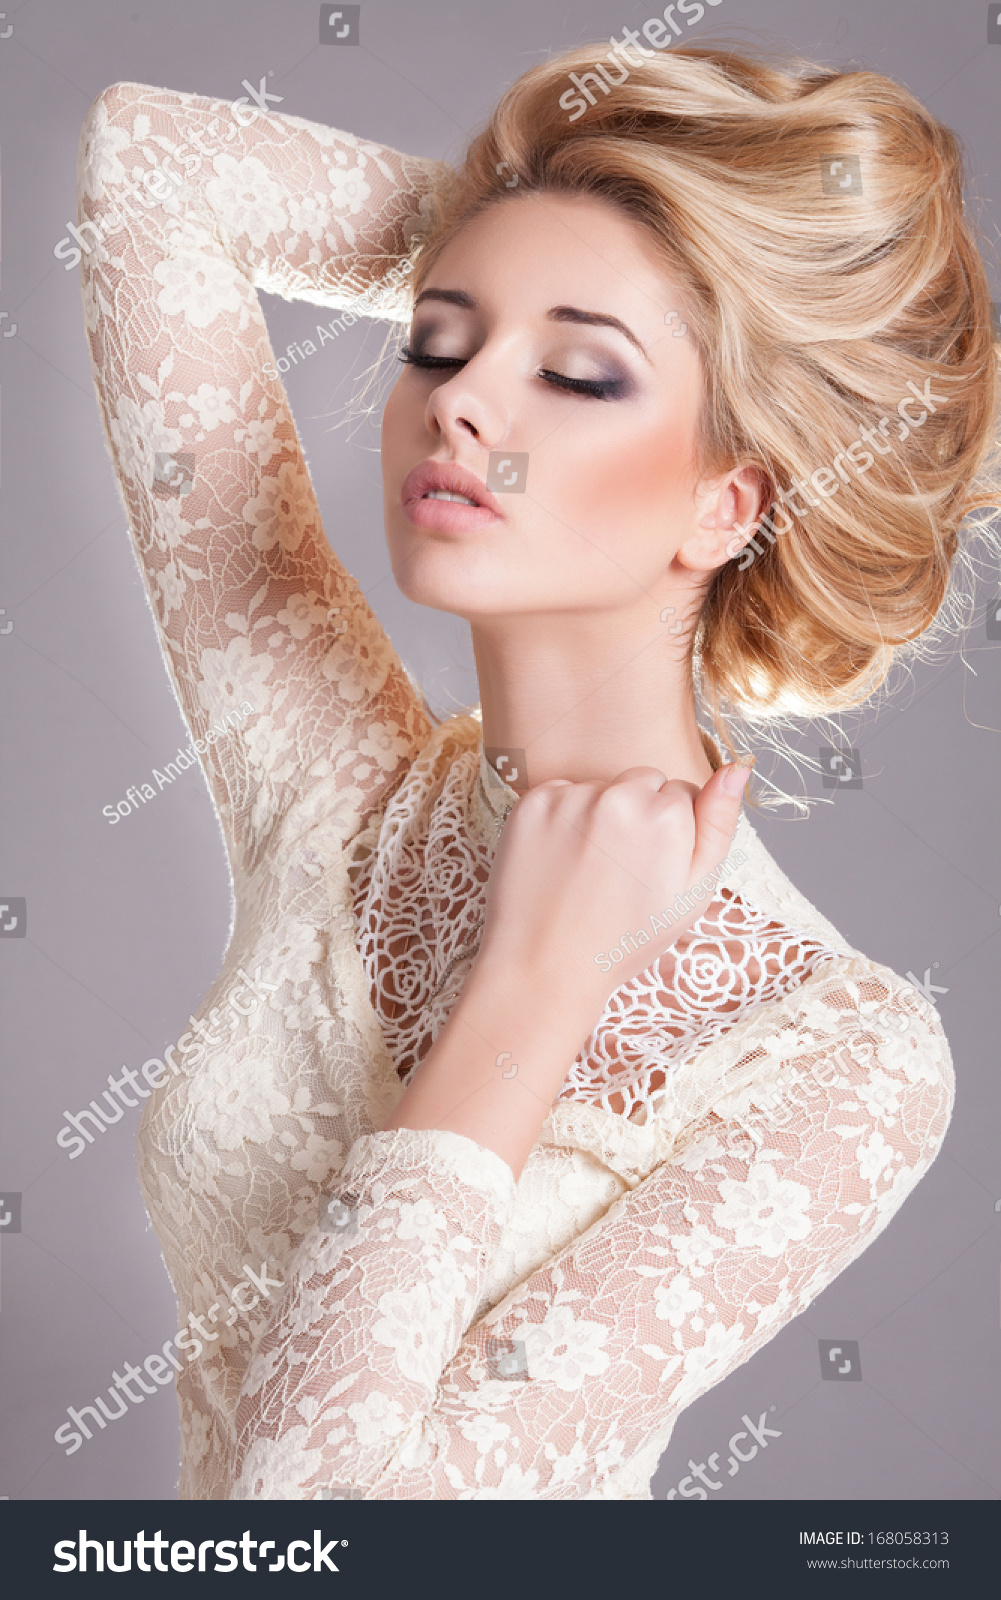 White dress and makeup - Beauty Woman With Wedding Hairstyle And Makeup Bride Fashion Jewelry And Beauty Woman